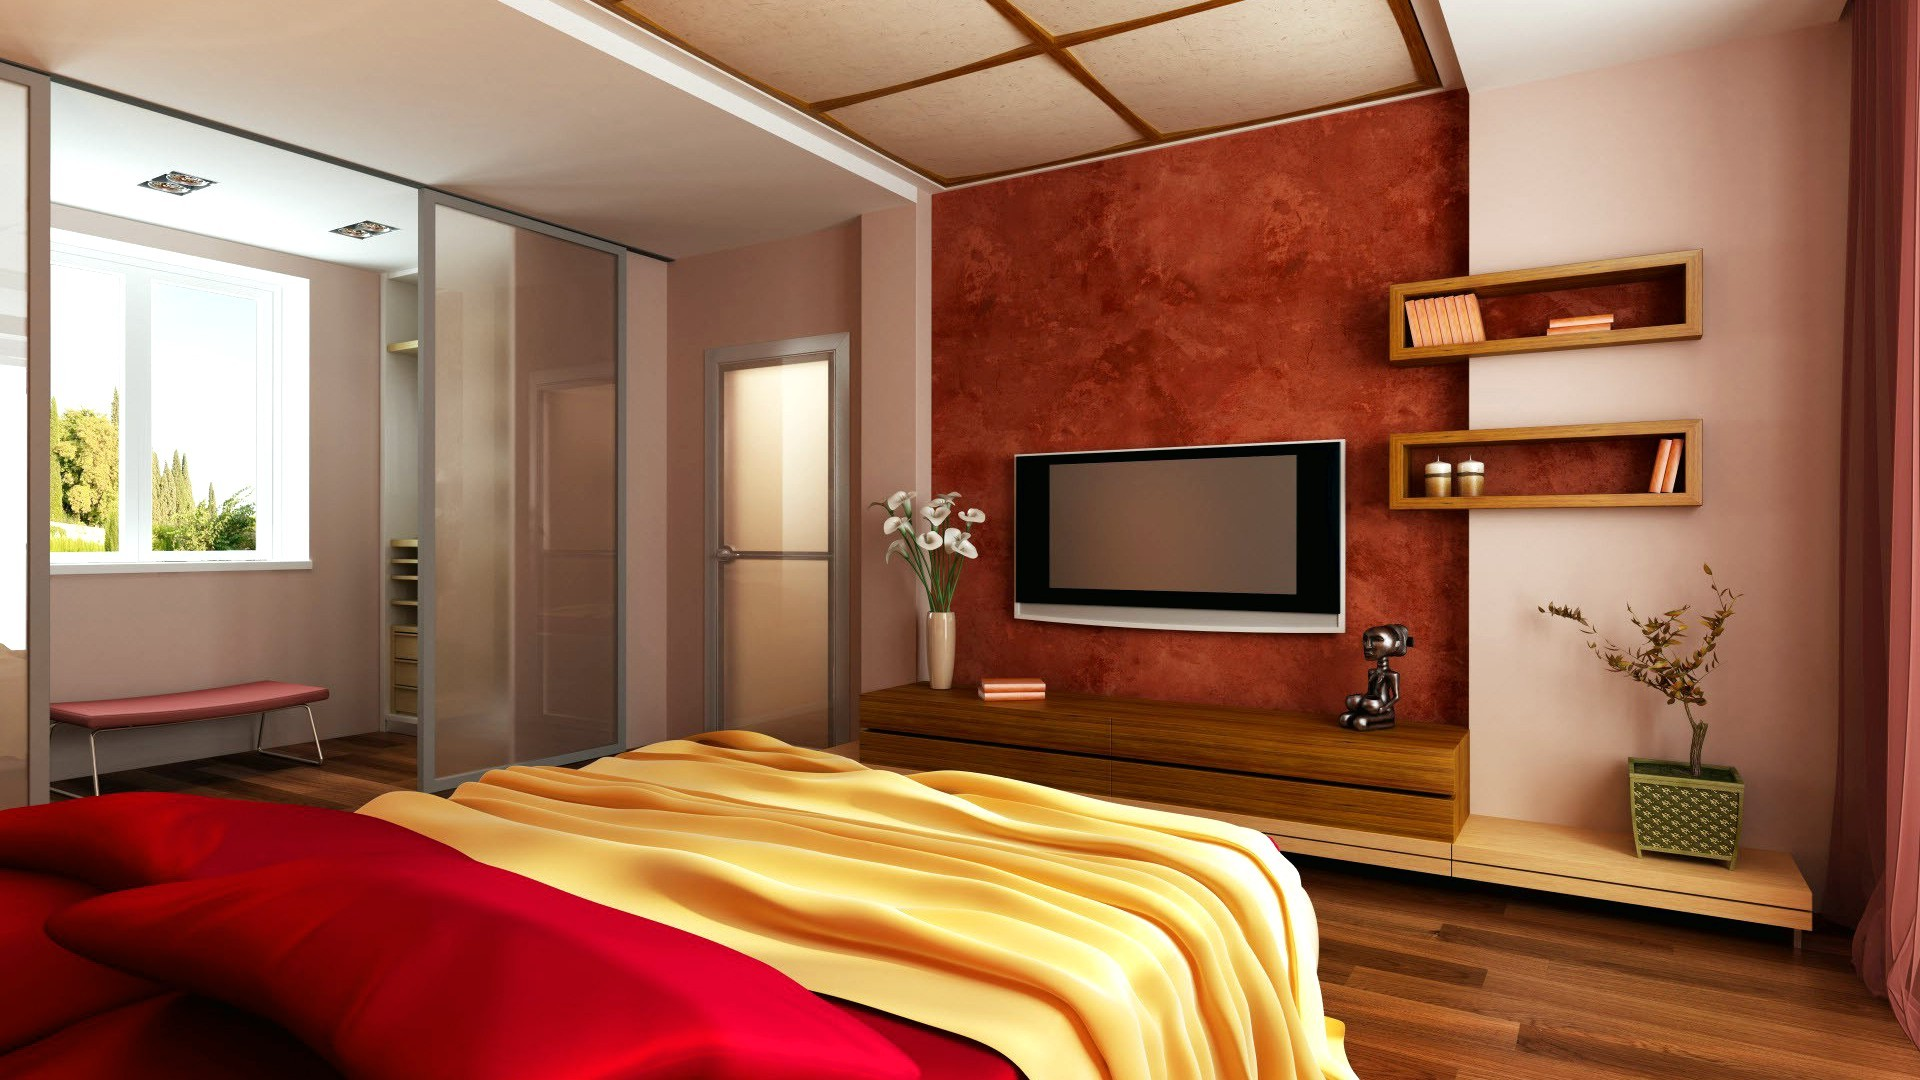 picture: mensole, tv, porta, finestra, camera, letto, camera da letto (image)